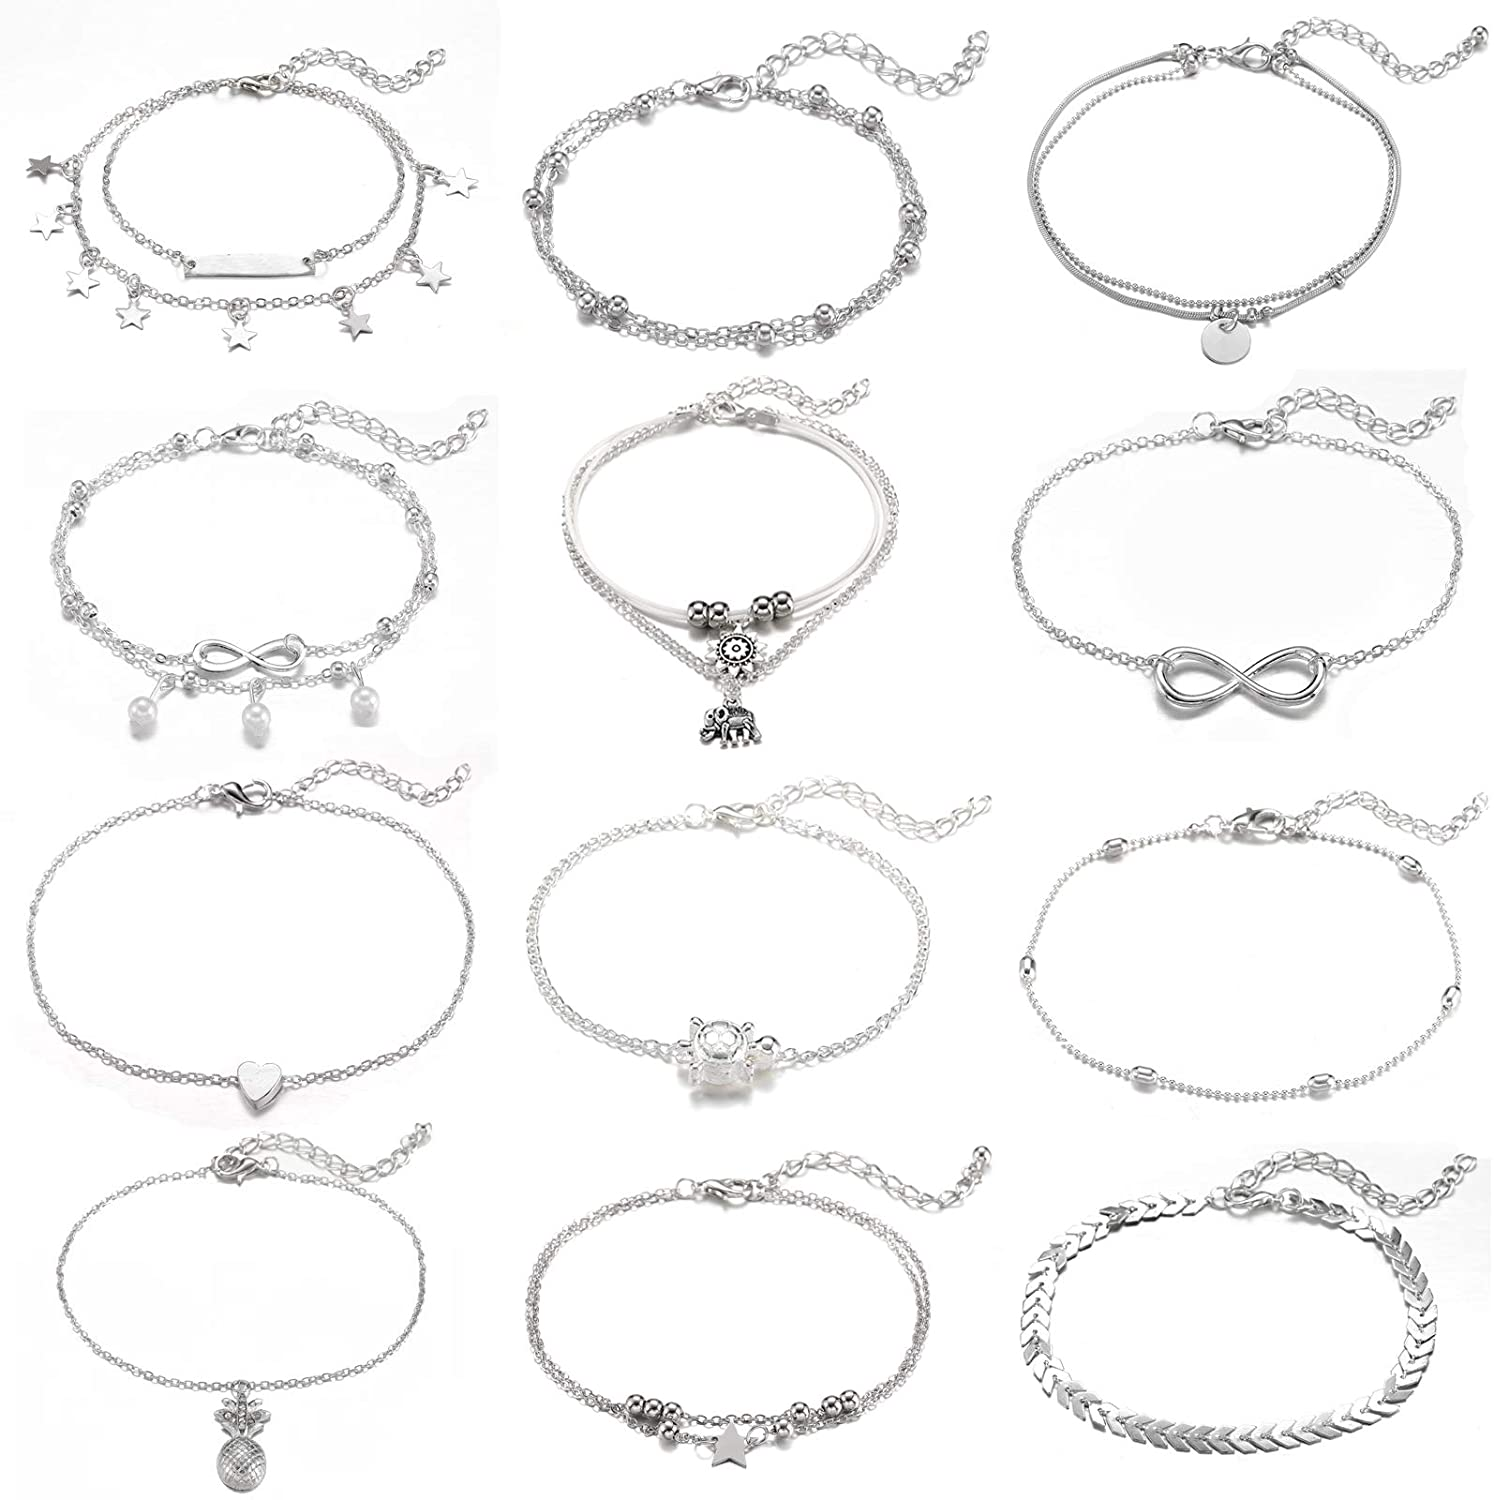 Starain 12 Pieces Cute Ankle Bracelets Women Girls Adjustable Heart Elephant Layered Anklets Set Gold Silver Beach Foot Jewelry